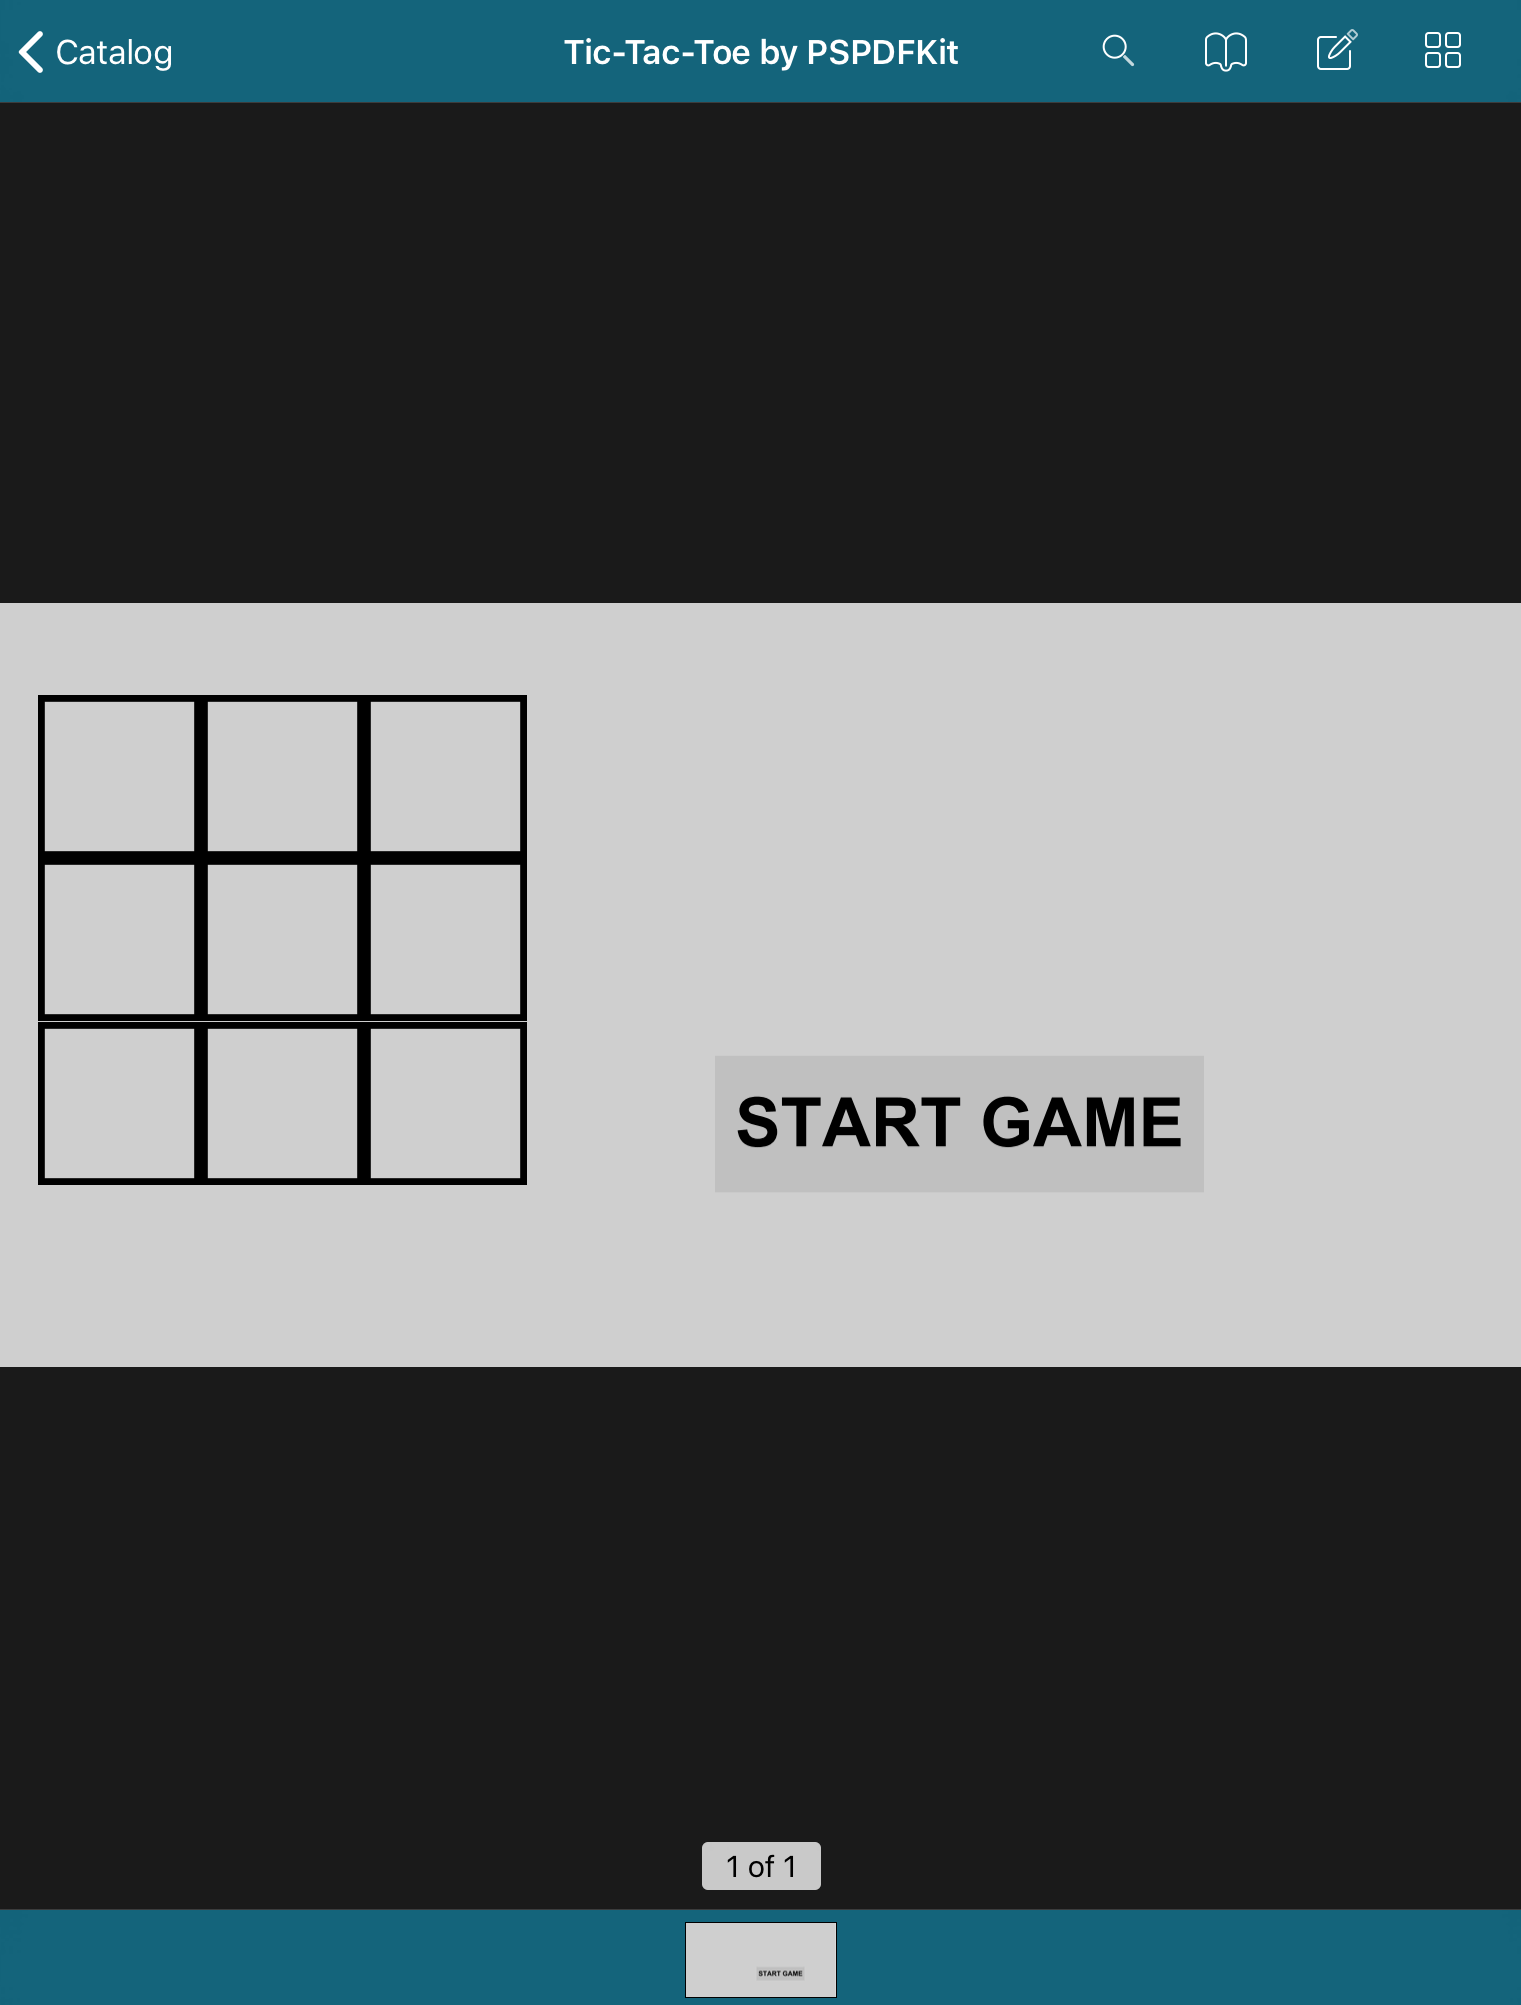 Screenshot showing the initial state of the tic-tac-toe game in a PDF